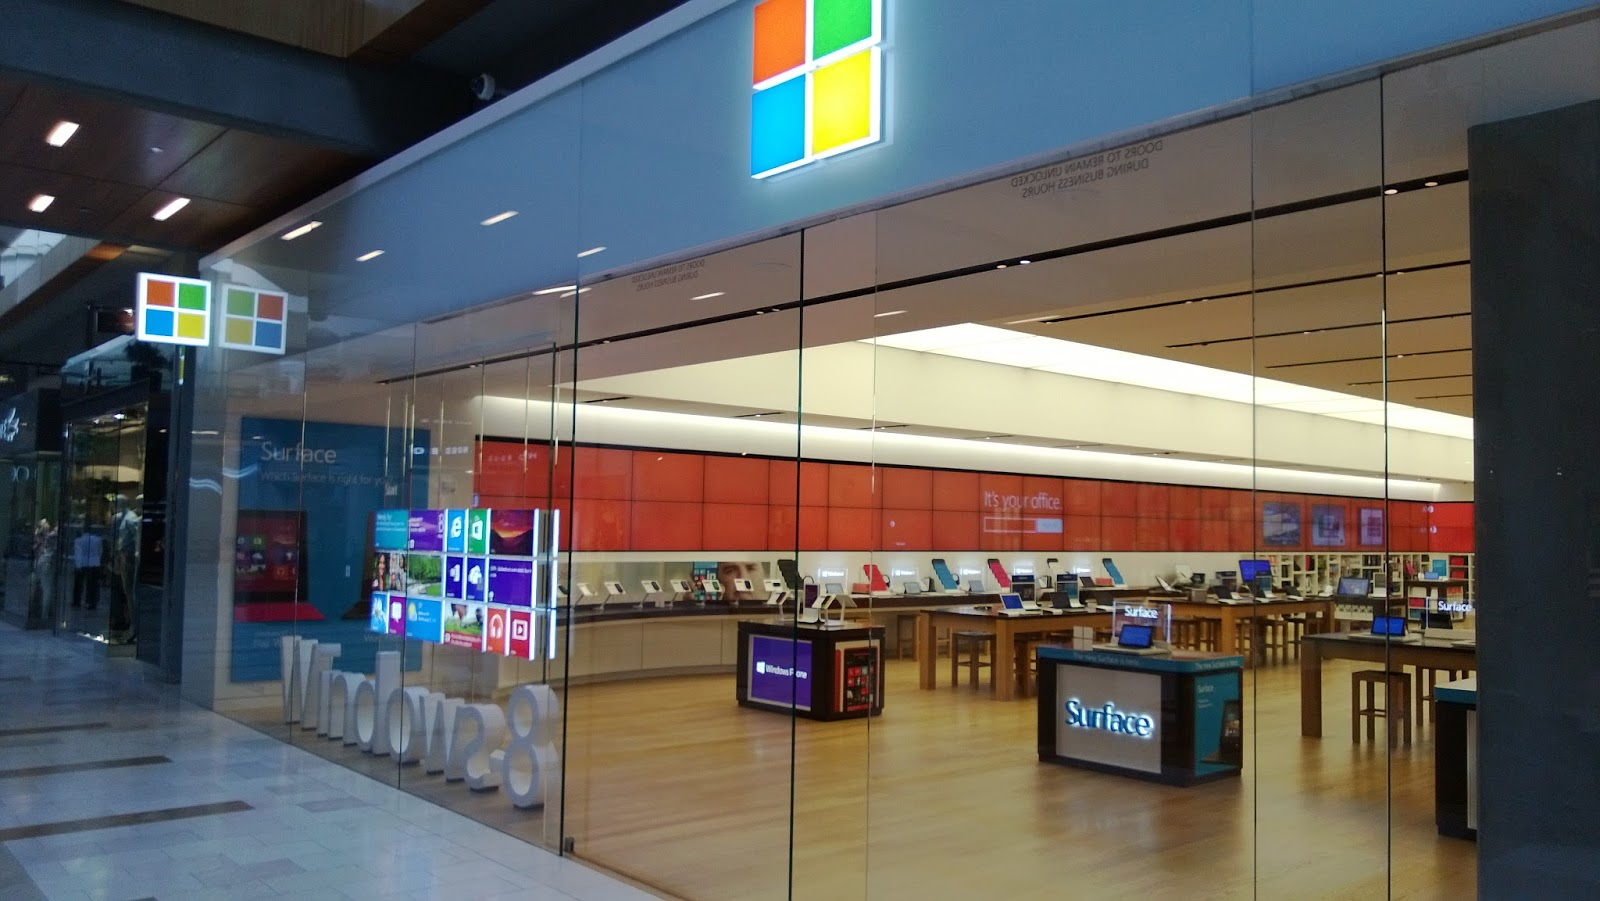 Image Gallery Microsoft Storefront